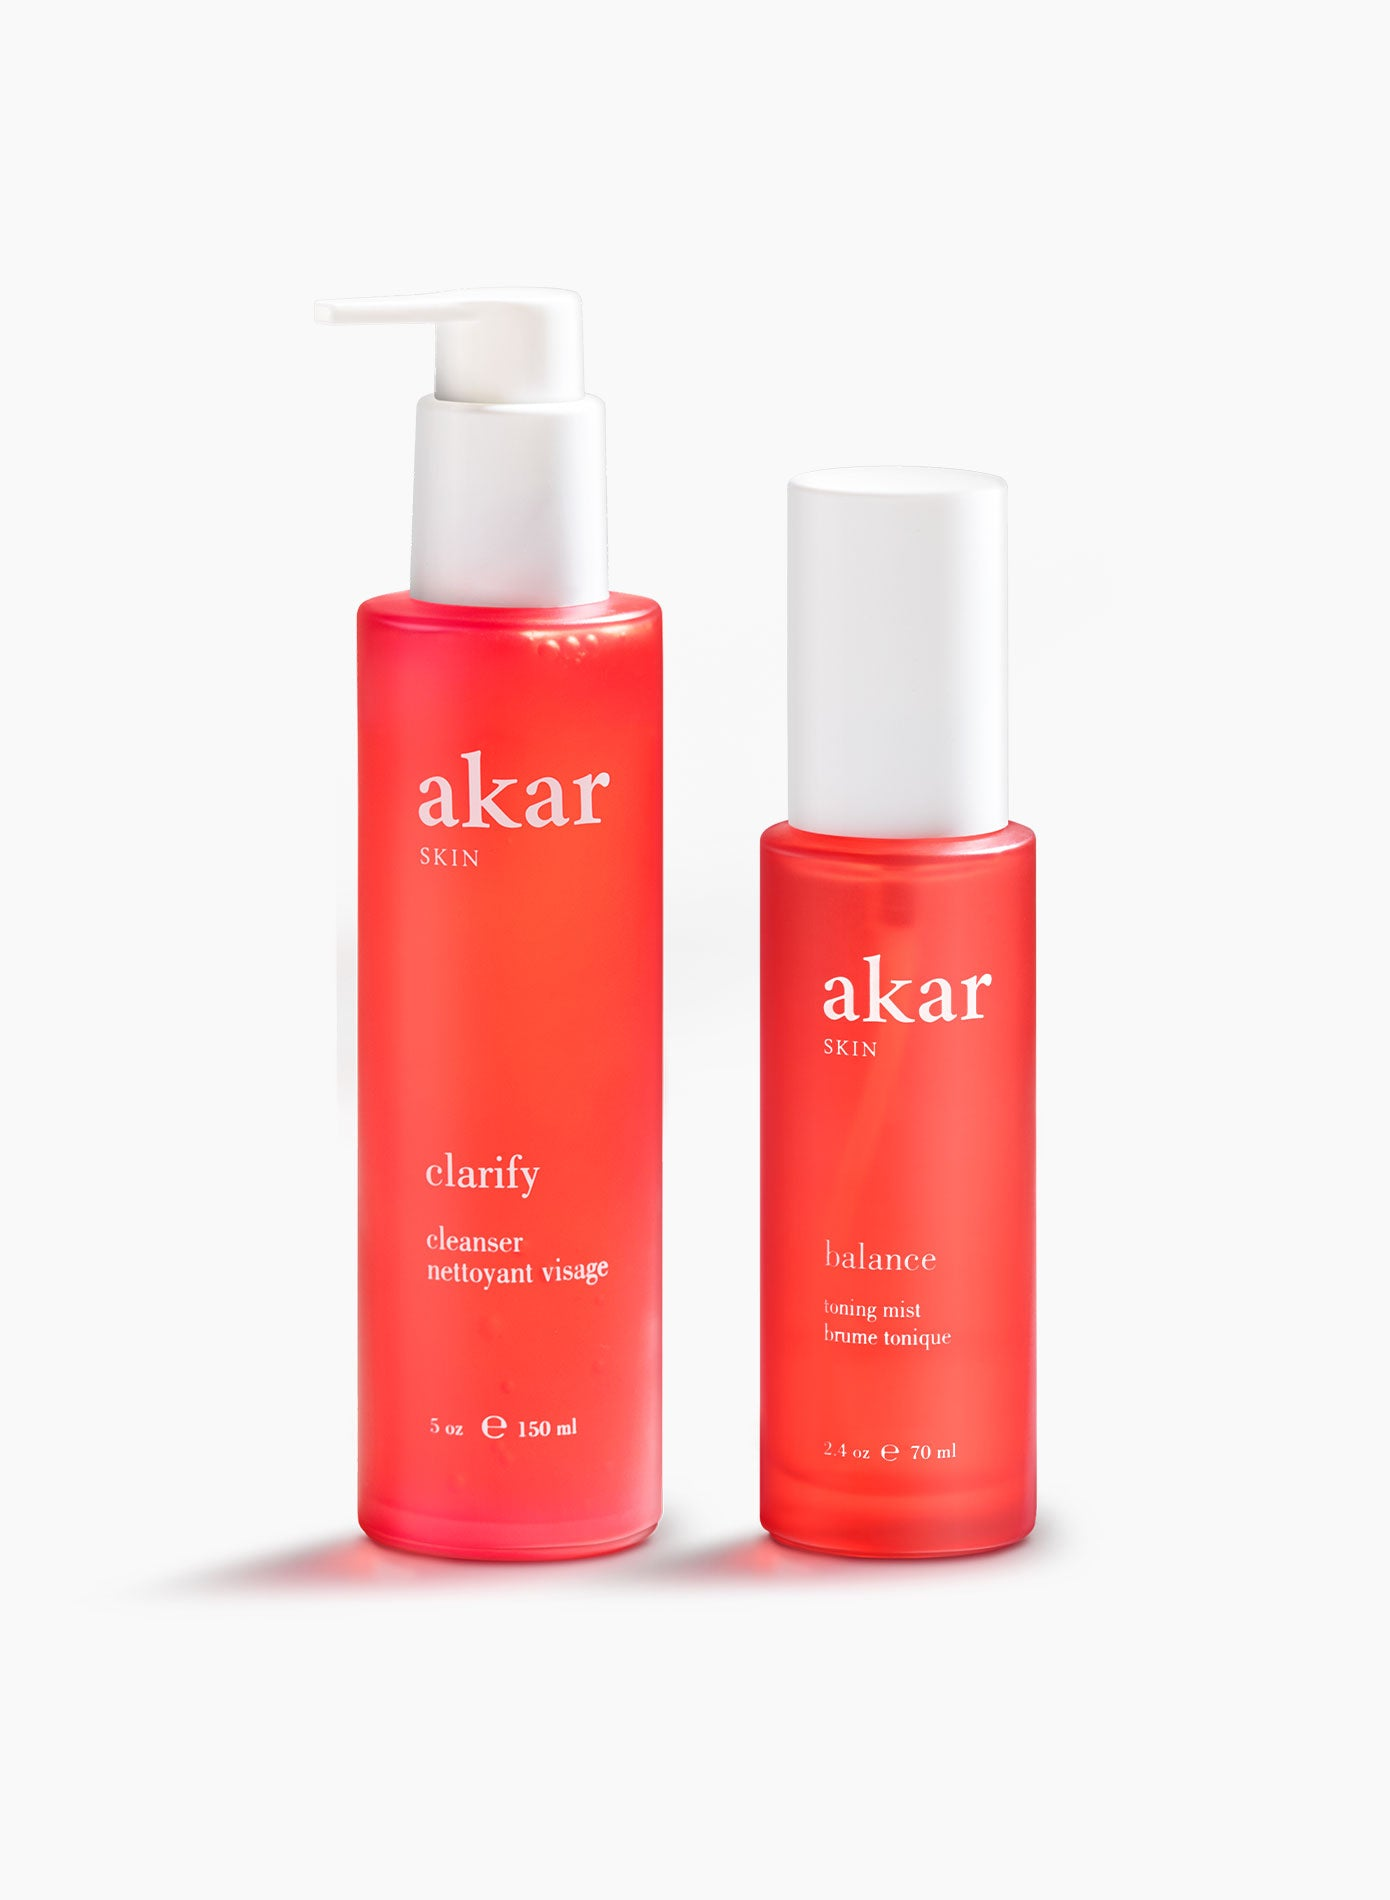 Akar Skin, Balance Toner, Clarify Cleanser, Valentines, oily, acne, combination skin, acne-prone, maskne, bundle, discount, set, clean beauty